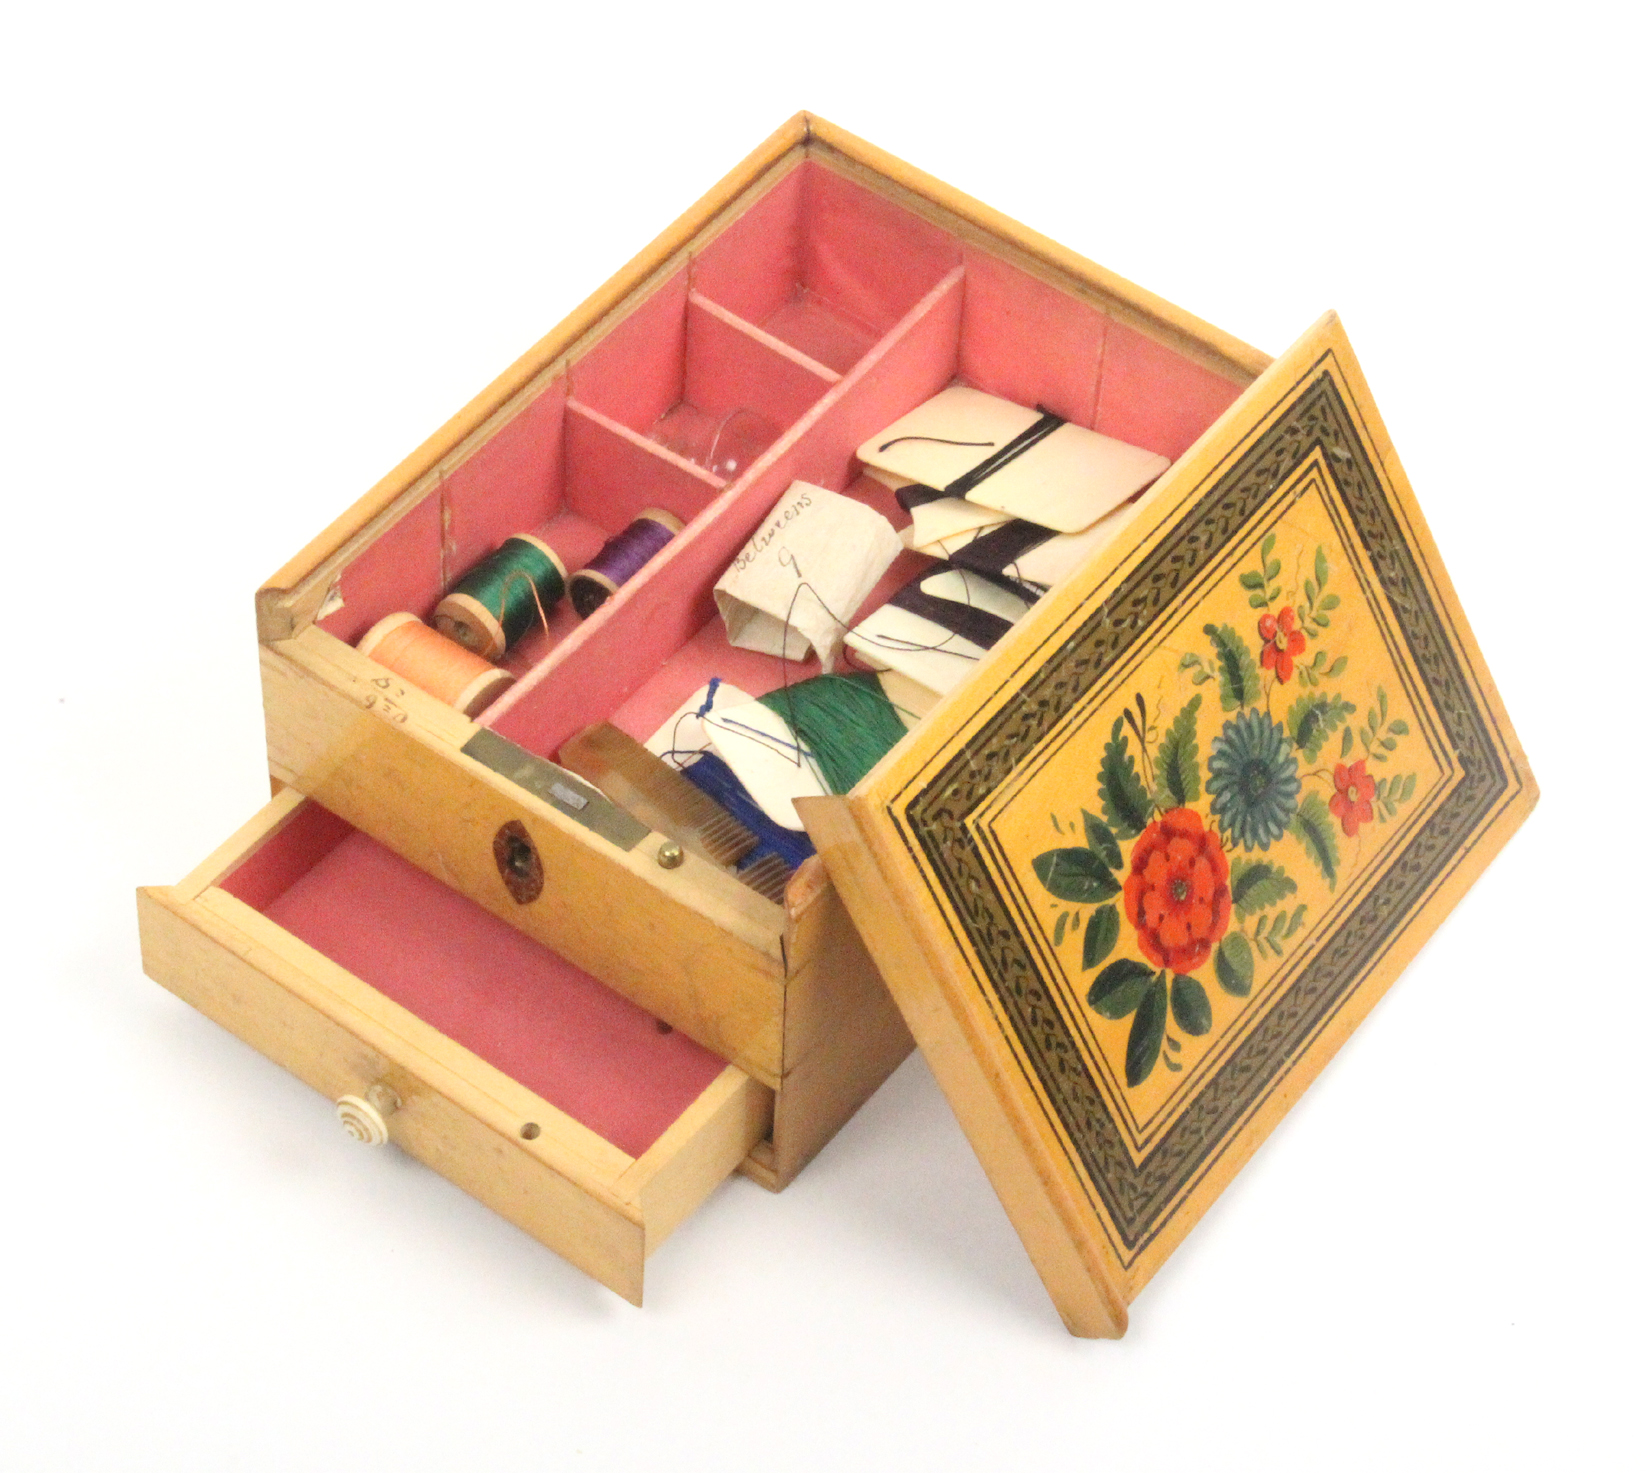 Lot 20 - An early painted Tunbridge ware whitewood sewing box of rectangular form, the sliding lid brightly